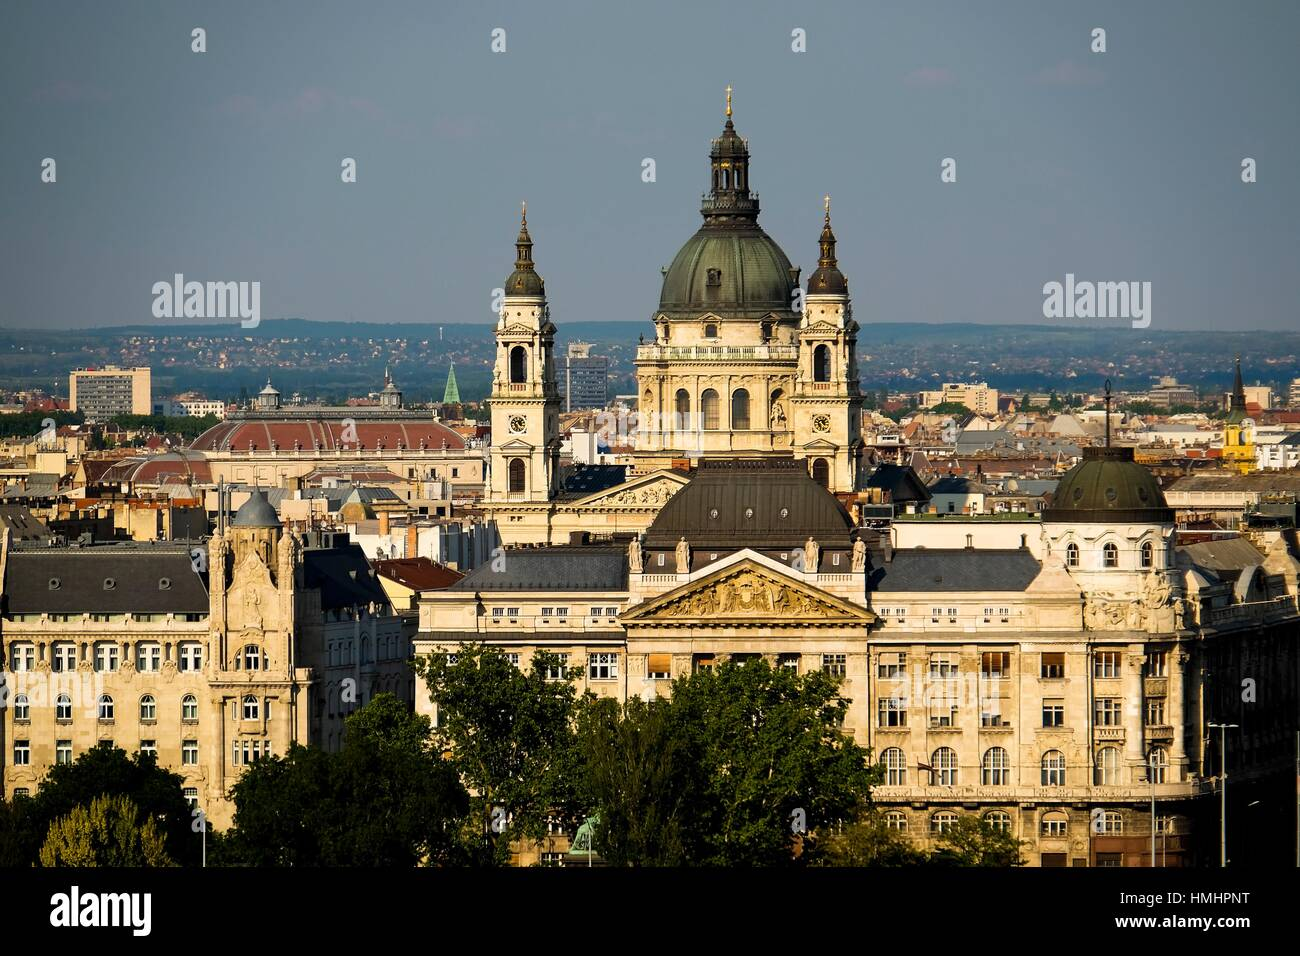 View ate the basilica in Budapest, Hungary. Stock Photo